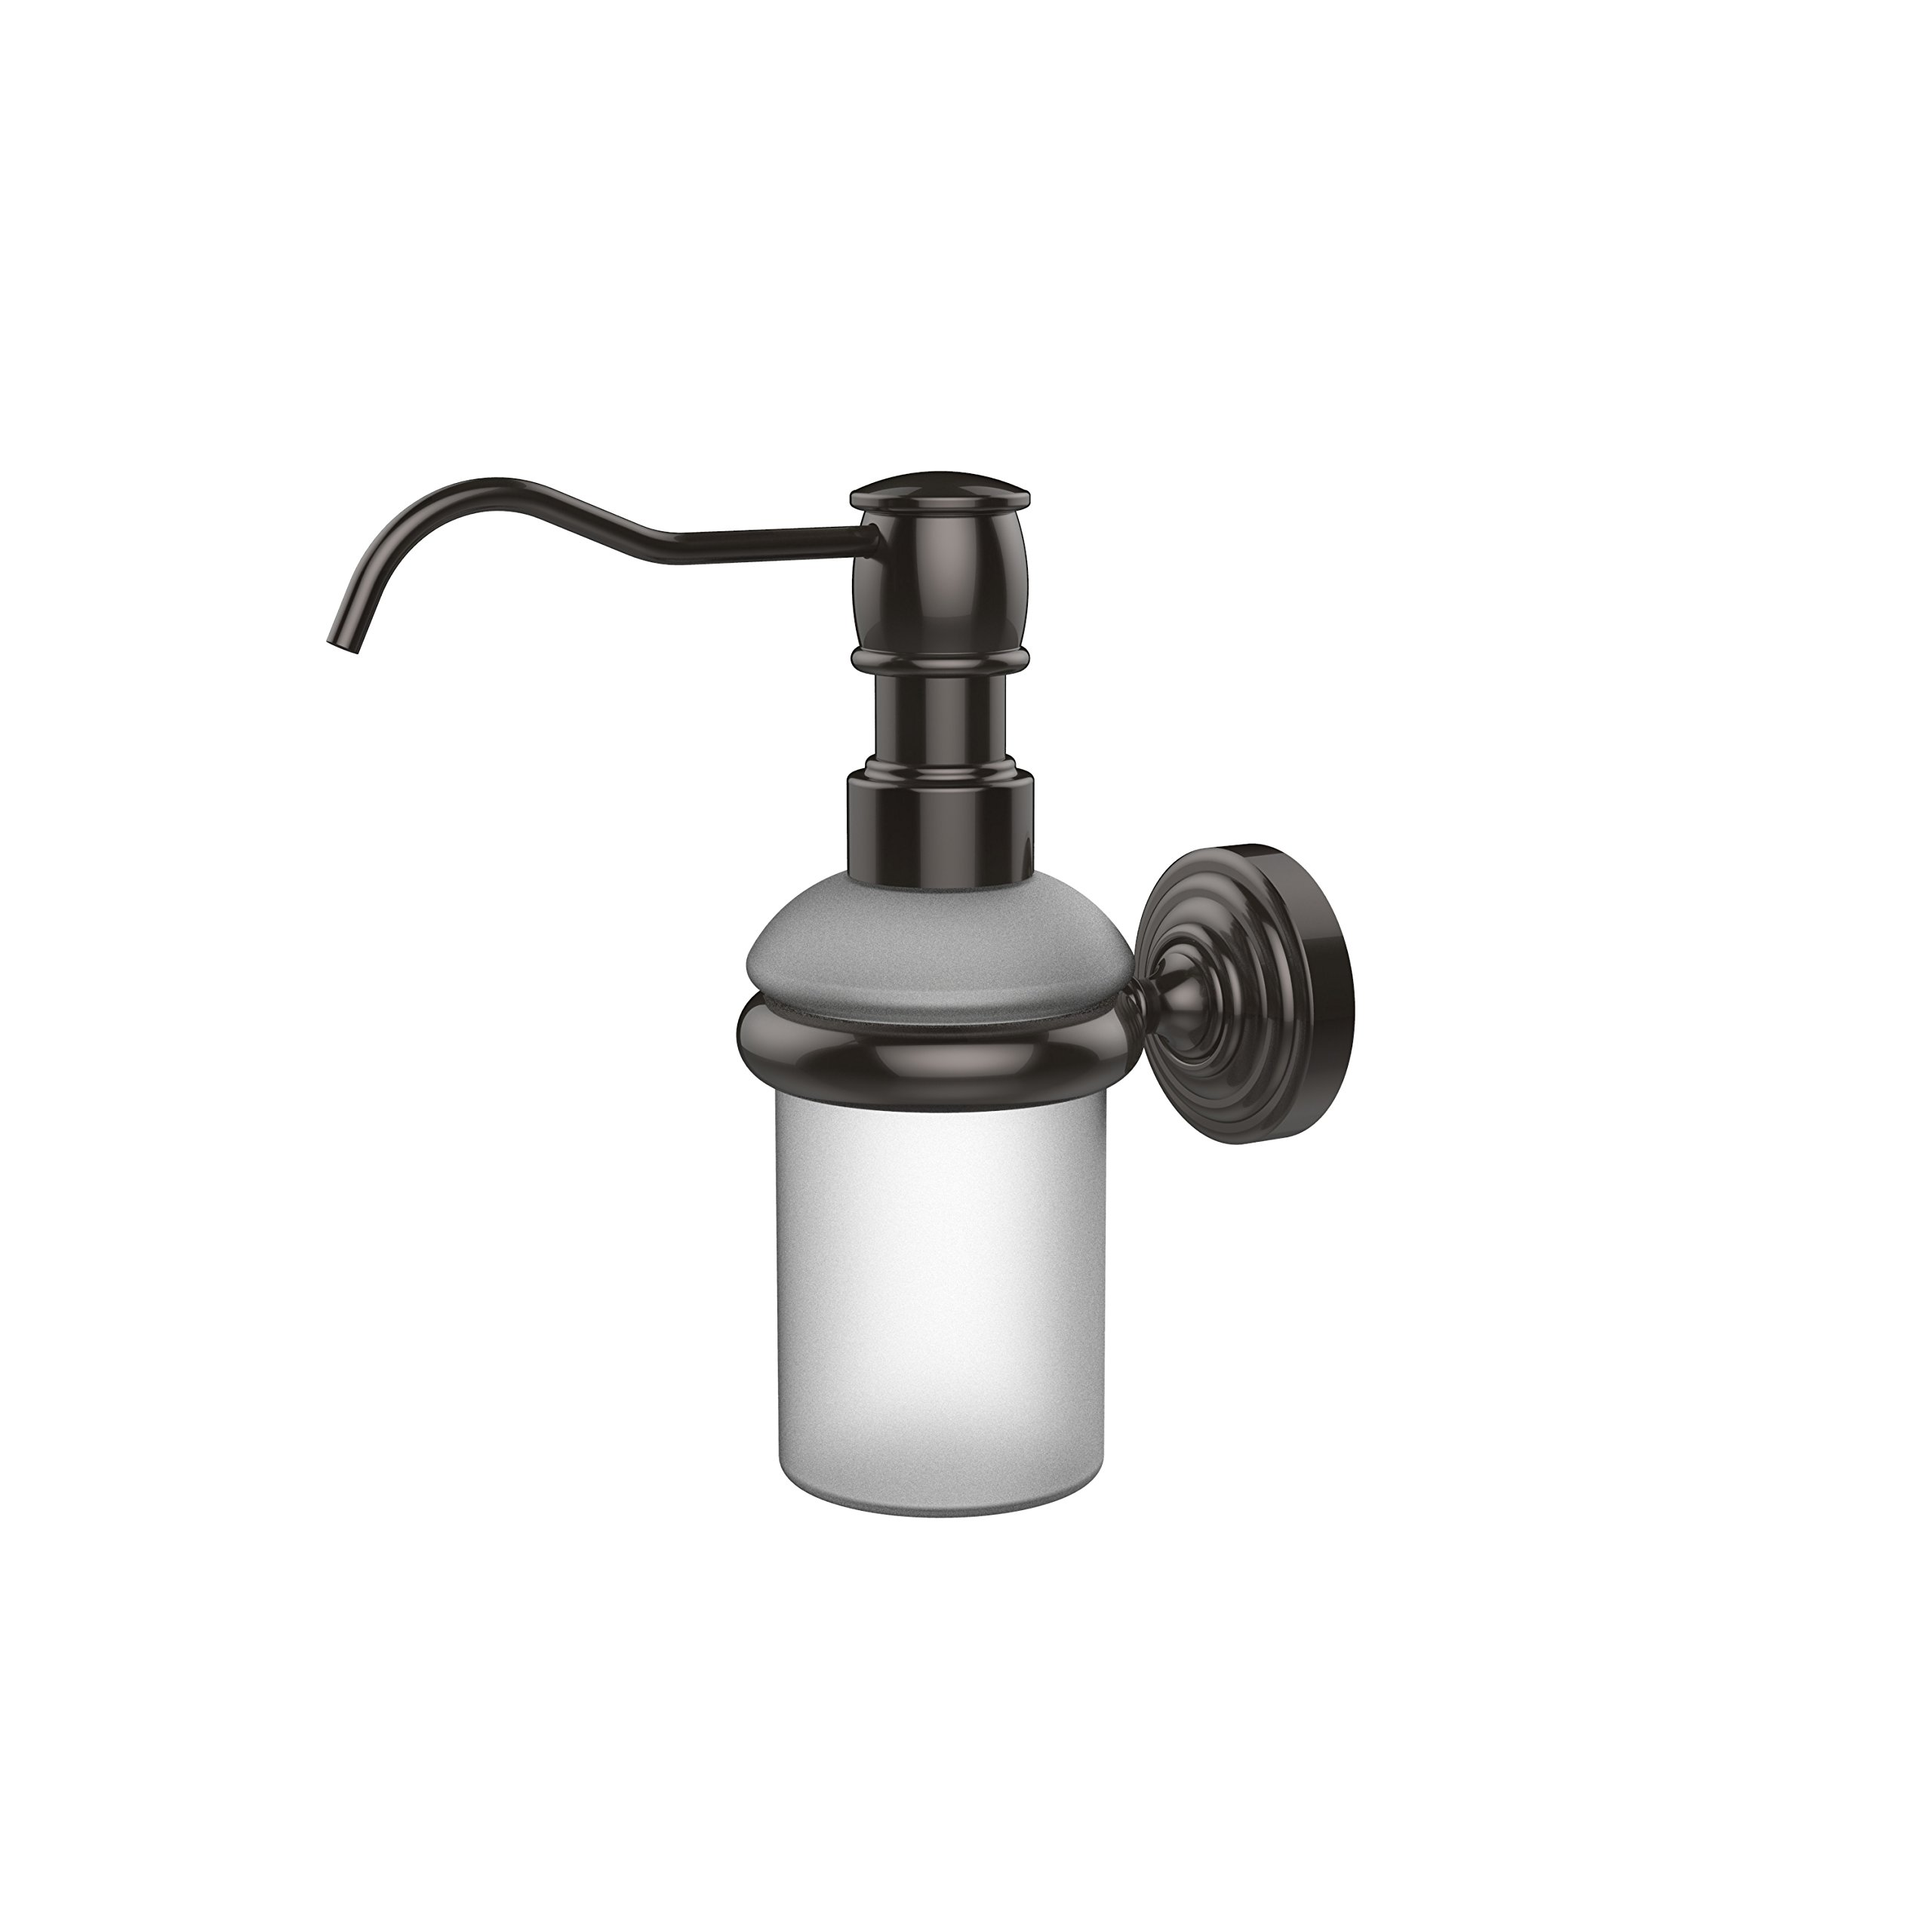 Allied Brass WP-60-ORB Waverly Place Collection Wall Mounted Soap Dispenser Oil Rubbed Bronze